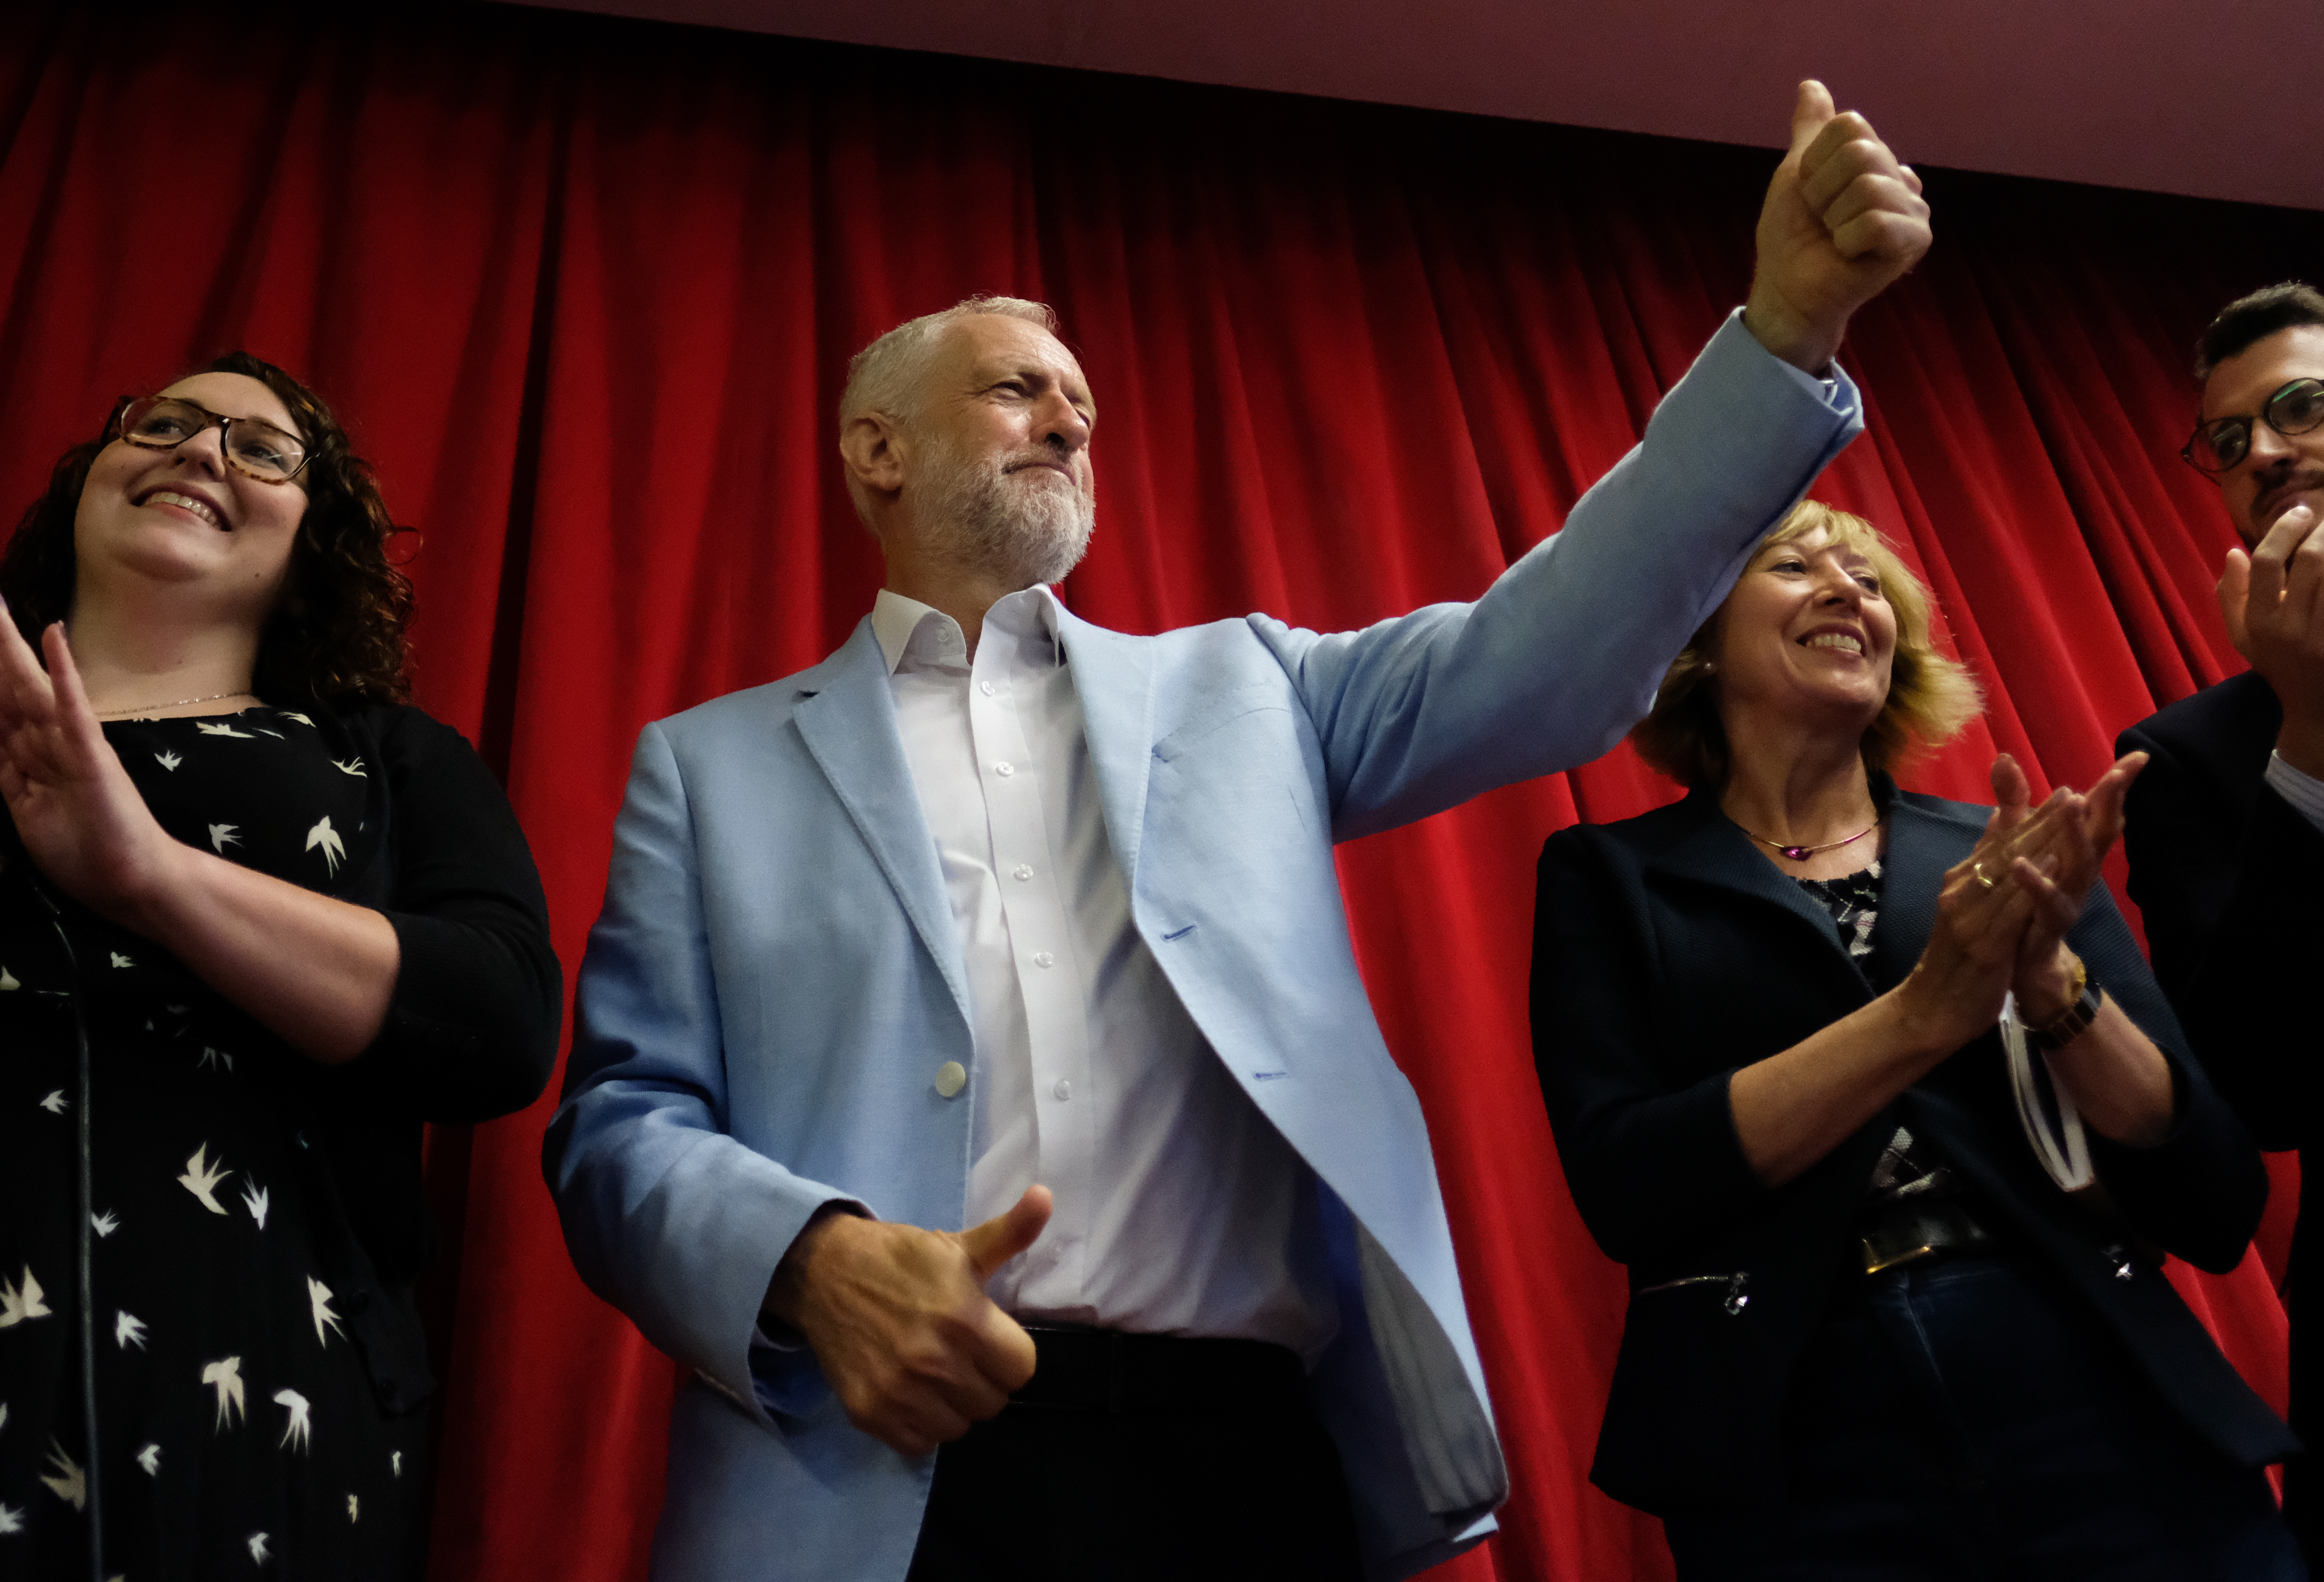 GLASGOW, SCOTLAND - AUGUST 31: Labour leader Jeremy Corbyn attends a campaign day at the Alive and Kicking Project building in Glasgow to speak about opposition against Boris Johnson and the UK government proroguing Parliament on August 31, 2019 in Glasgow, United Kingdom. Demonstrations and protests have already taken place and are planned across the country against Boris Johnson and a no-deal Brexit after the Prime Minister announced he would seek an extended suspension of Parliament ahead of a Queen's speech on October 14. (Photo by Ian Forsyth/Getty Images)